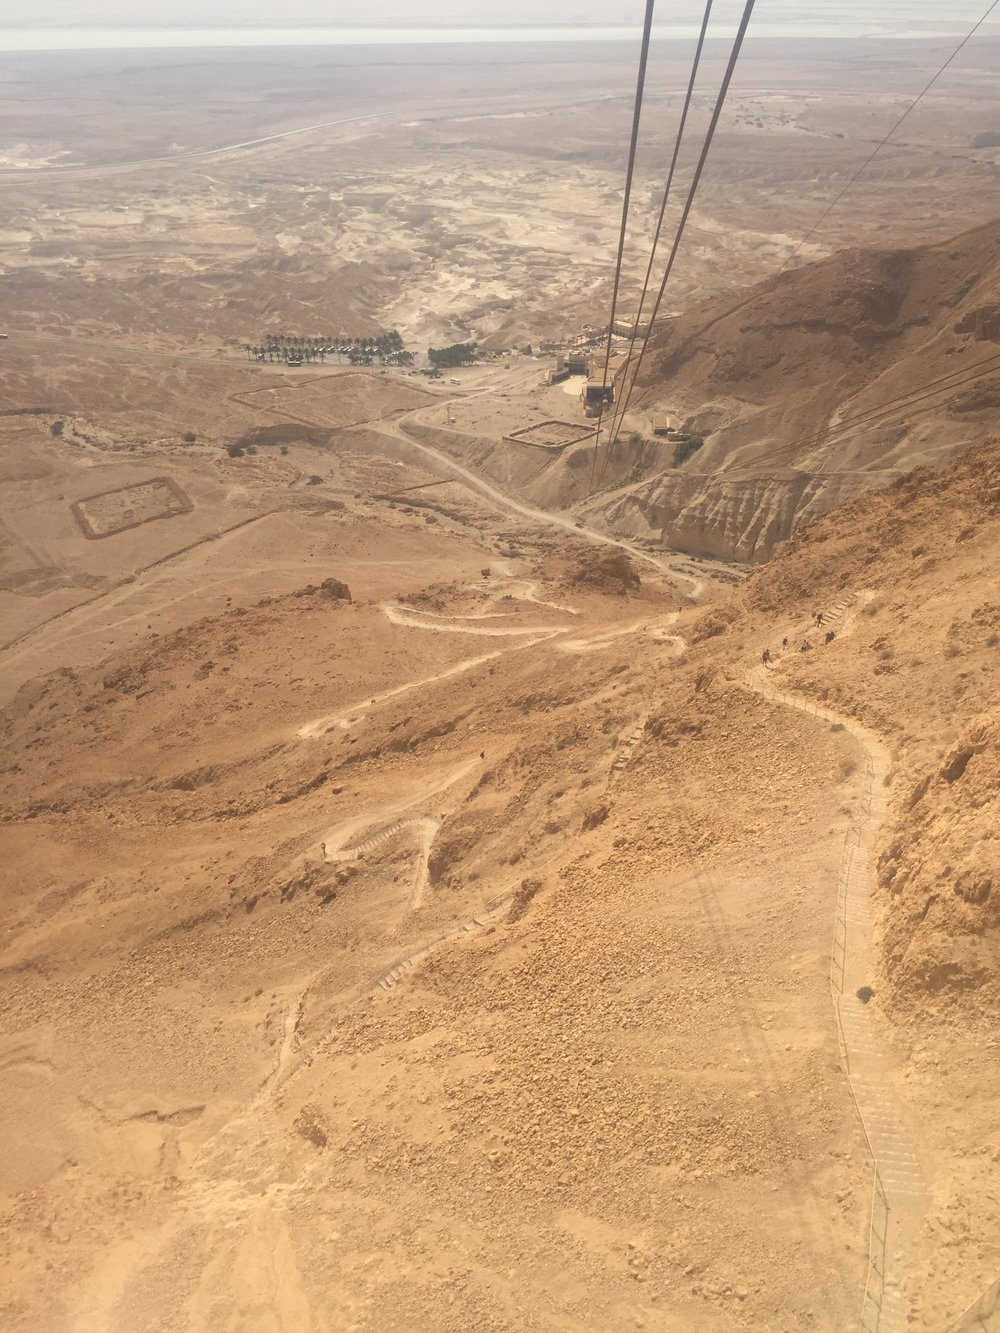 7 Israeli National Parks in 7 Days Masada: Walk or Ride?